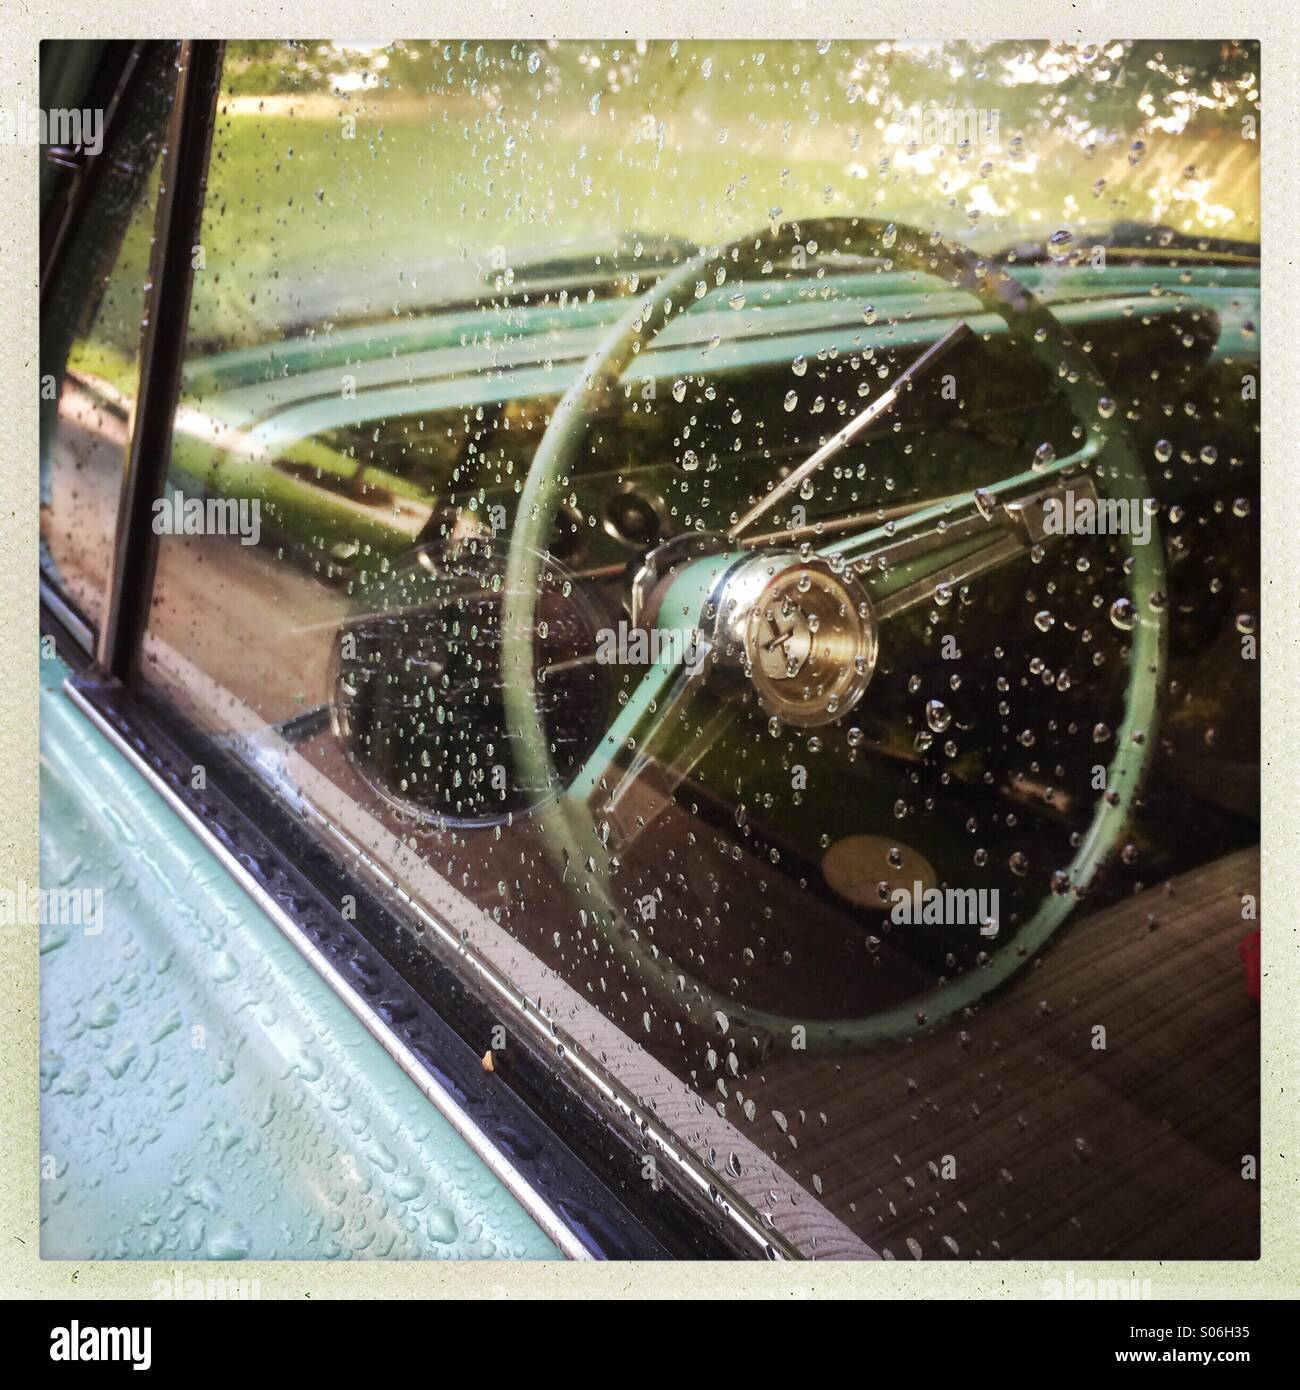 Rainy, vintage, car window with view of steering wheel - Stock Image